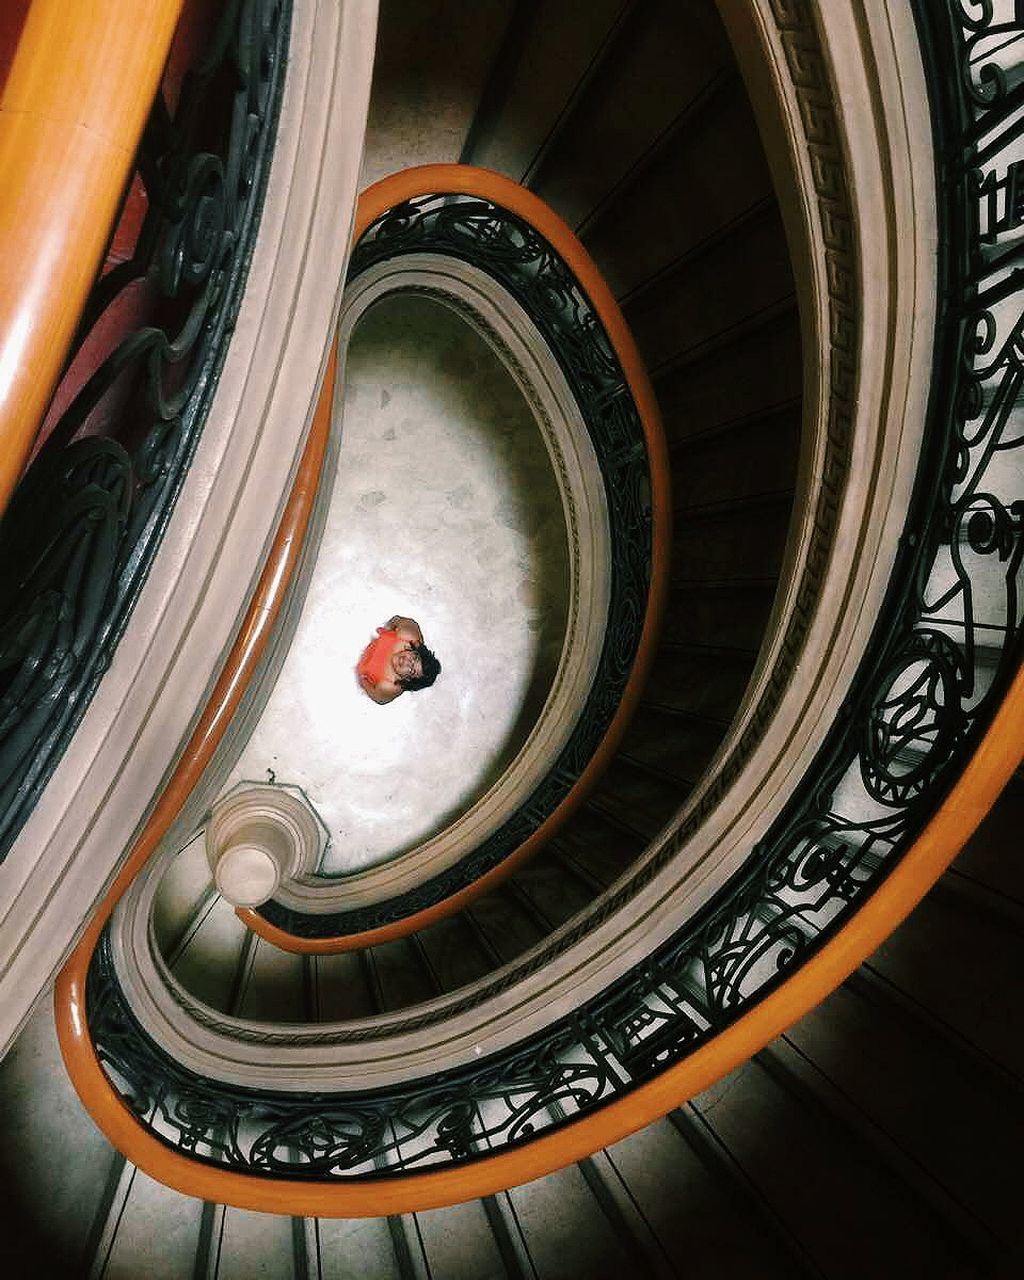 staircase, steps and staircases, steps, spiral, railing, indoors, architecture, built structure, spiral staircase, no people, day